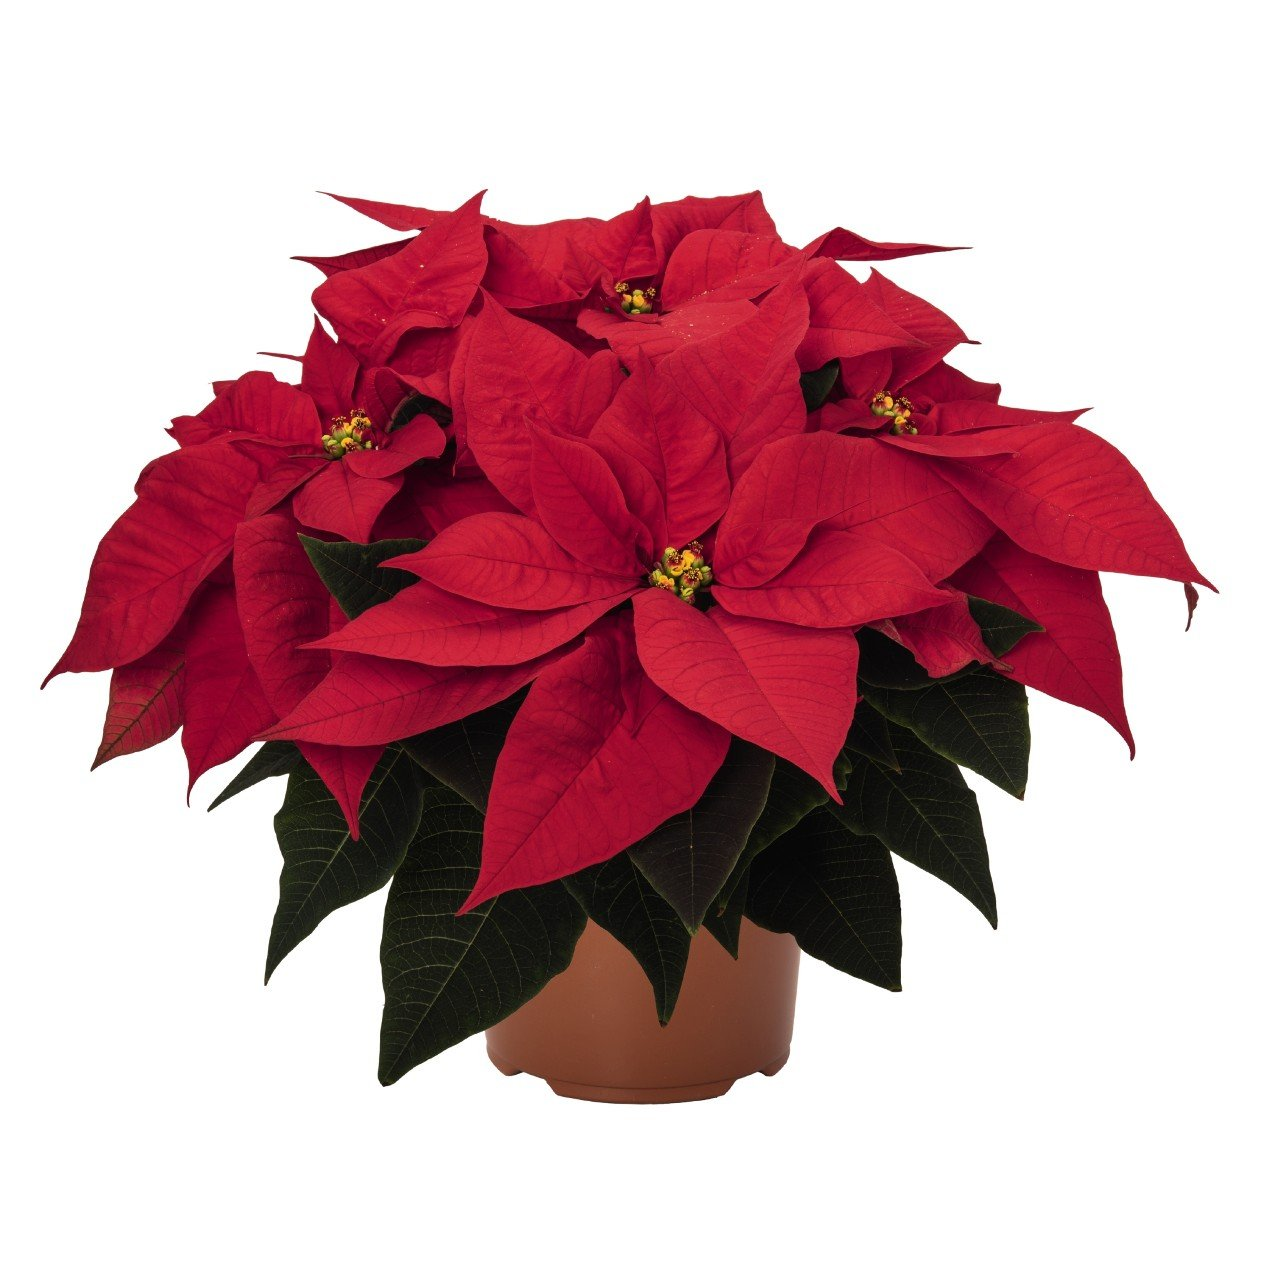 Burning Ember poinsettia Christmas holiday flower